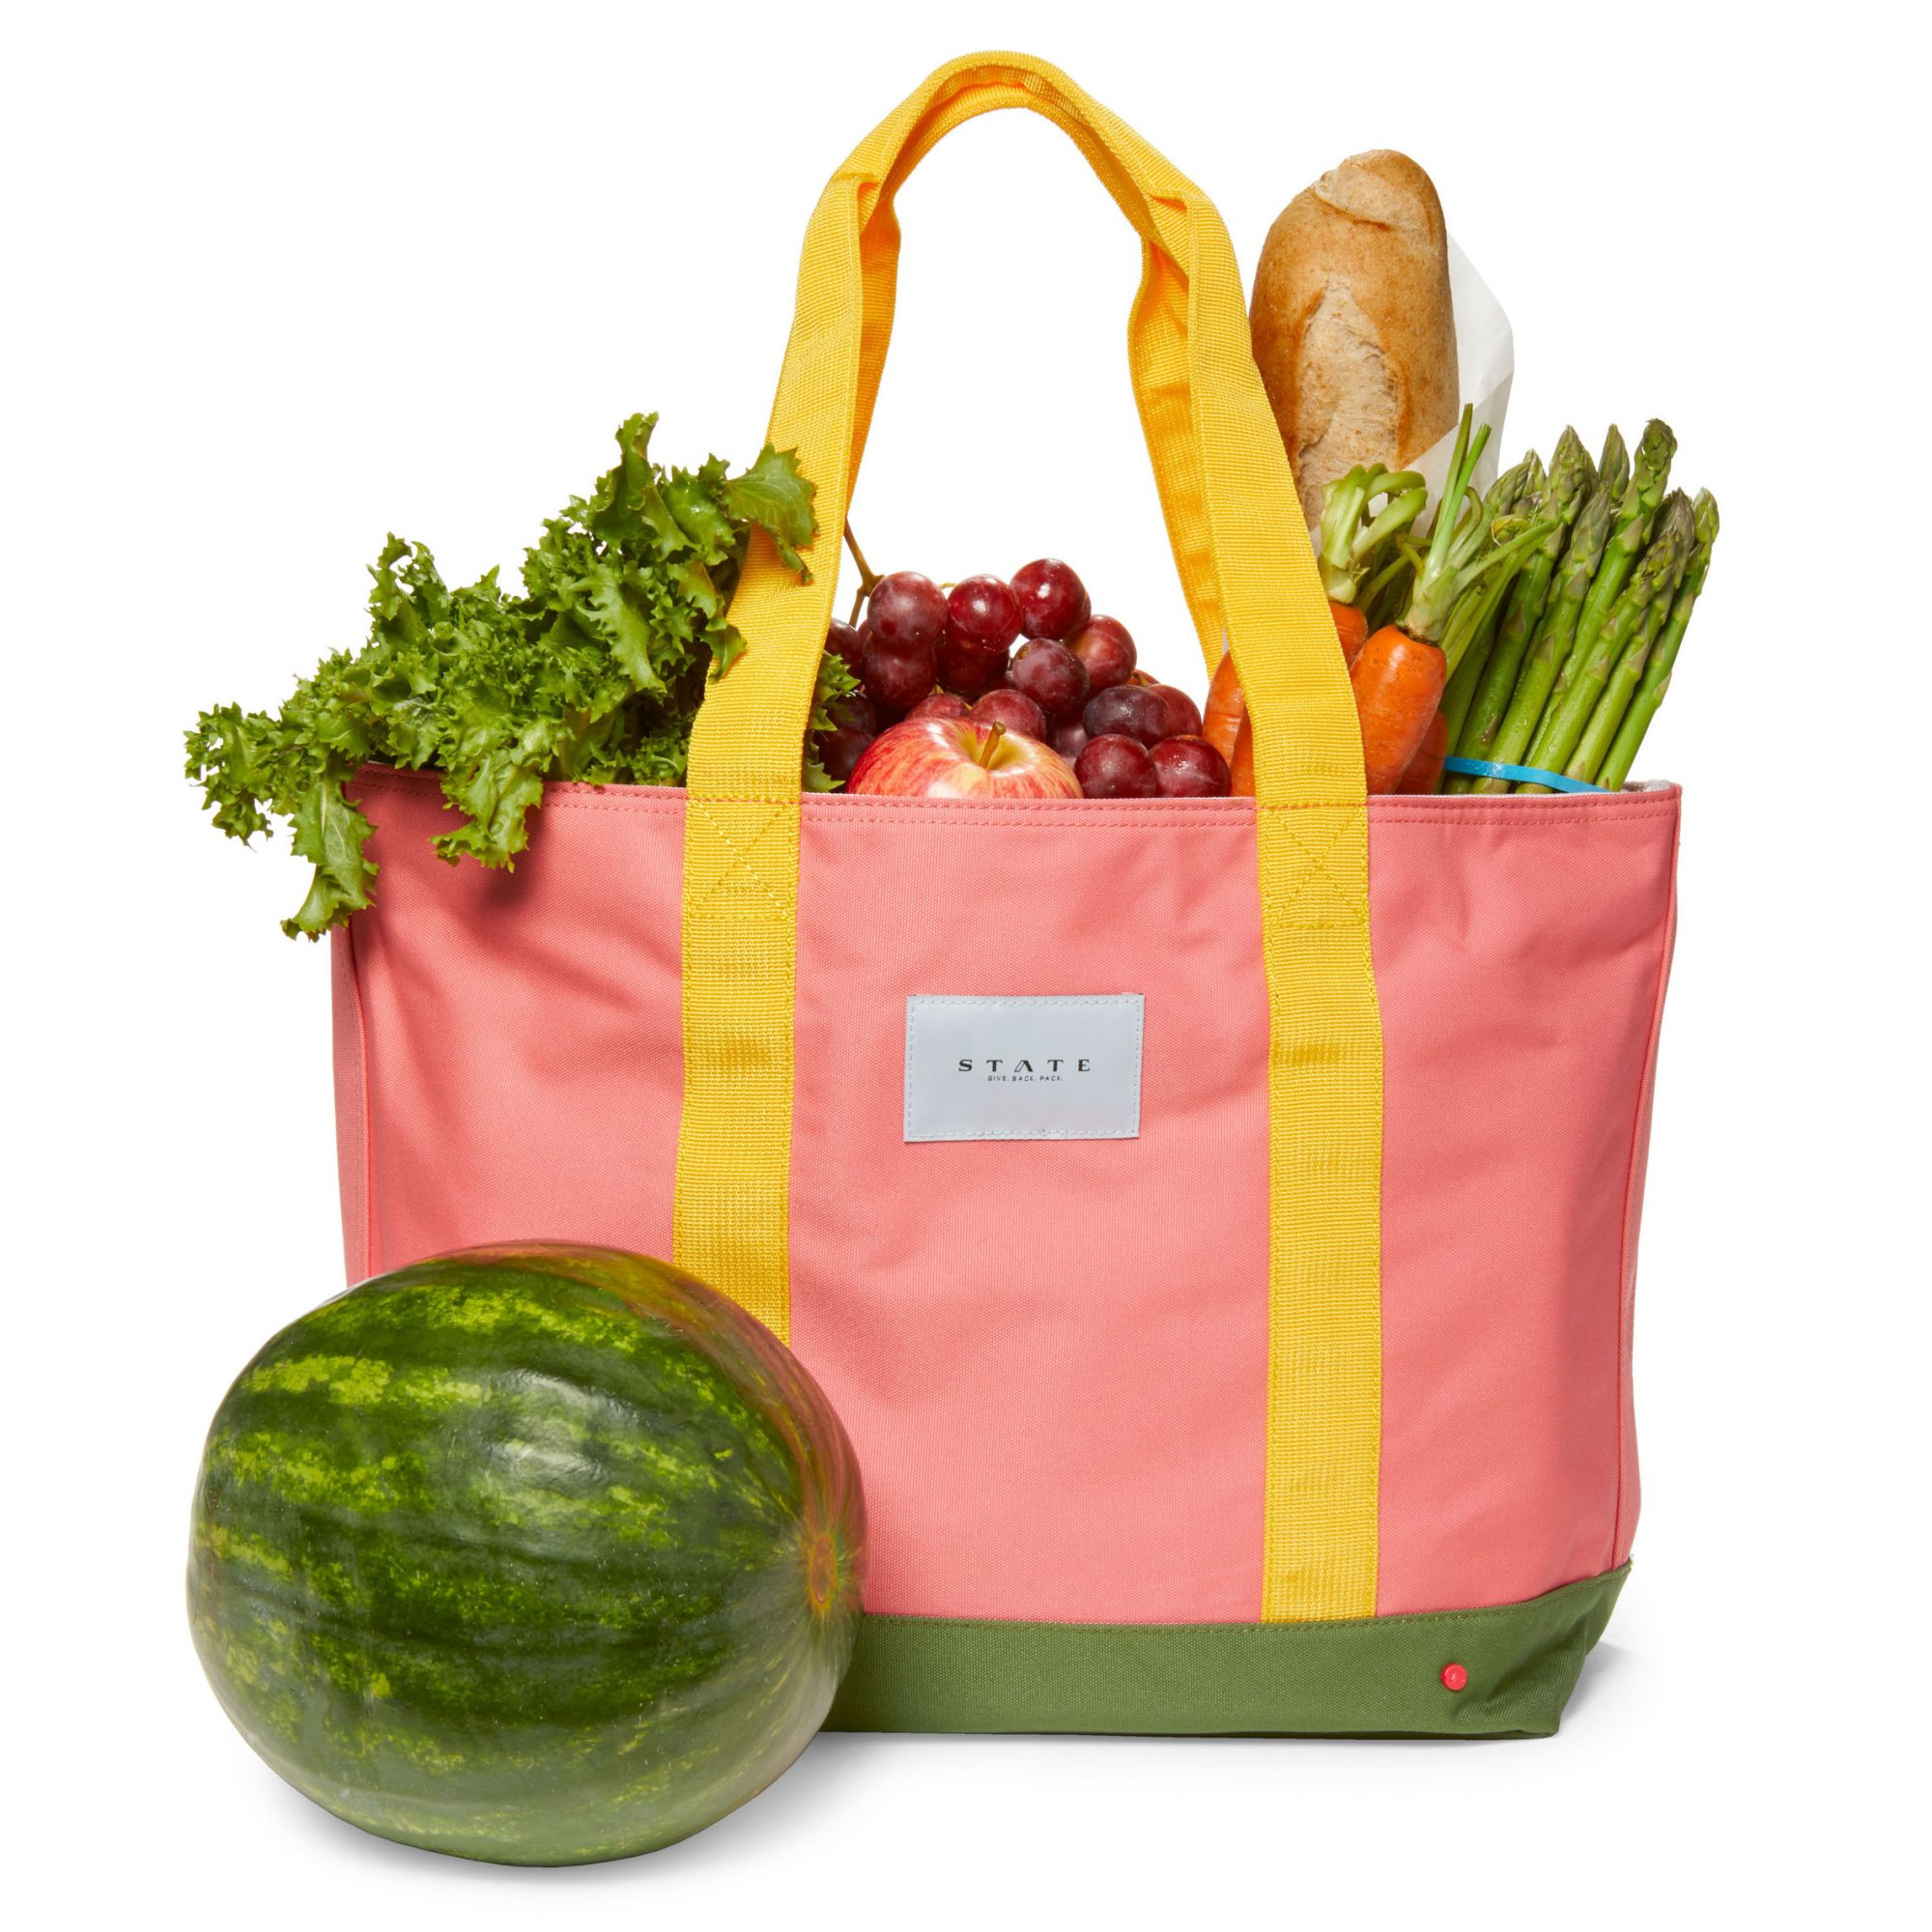 produce in the bag